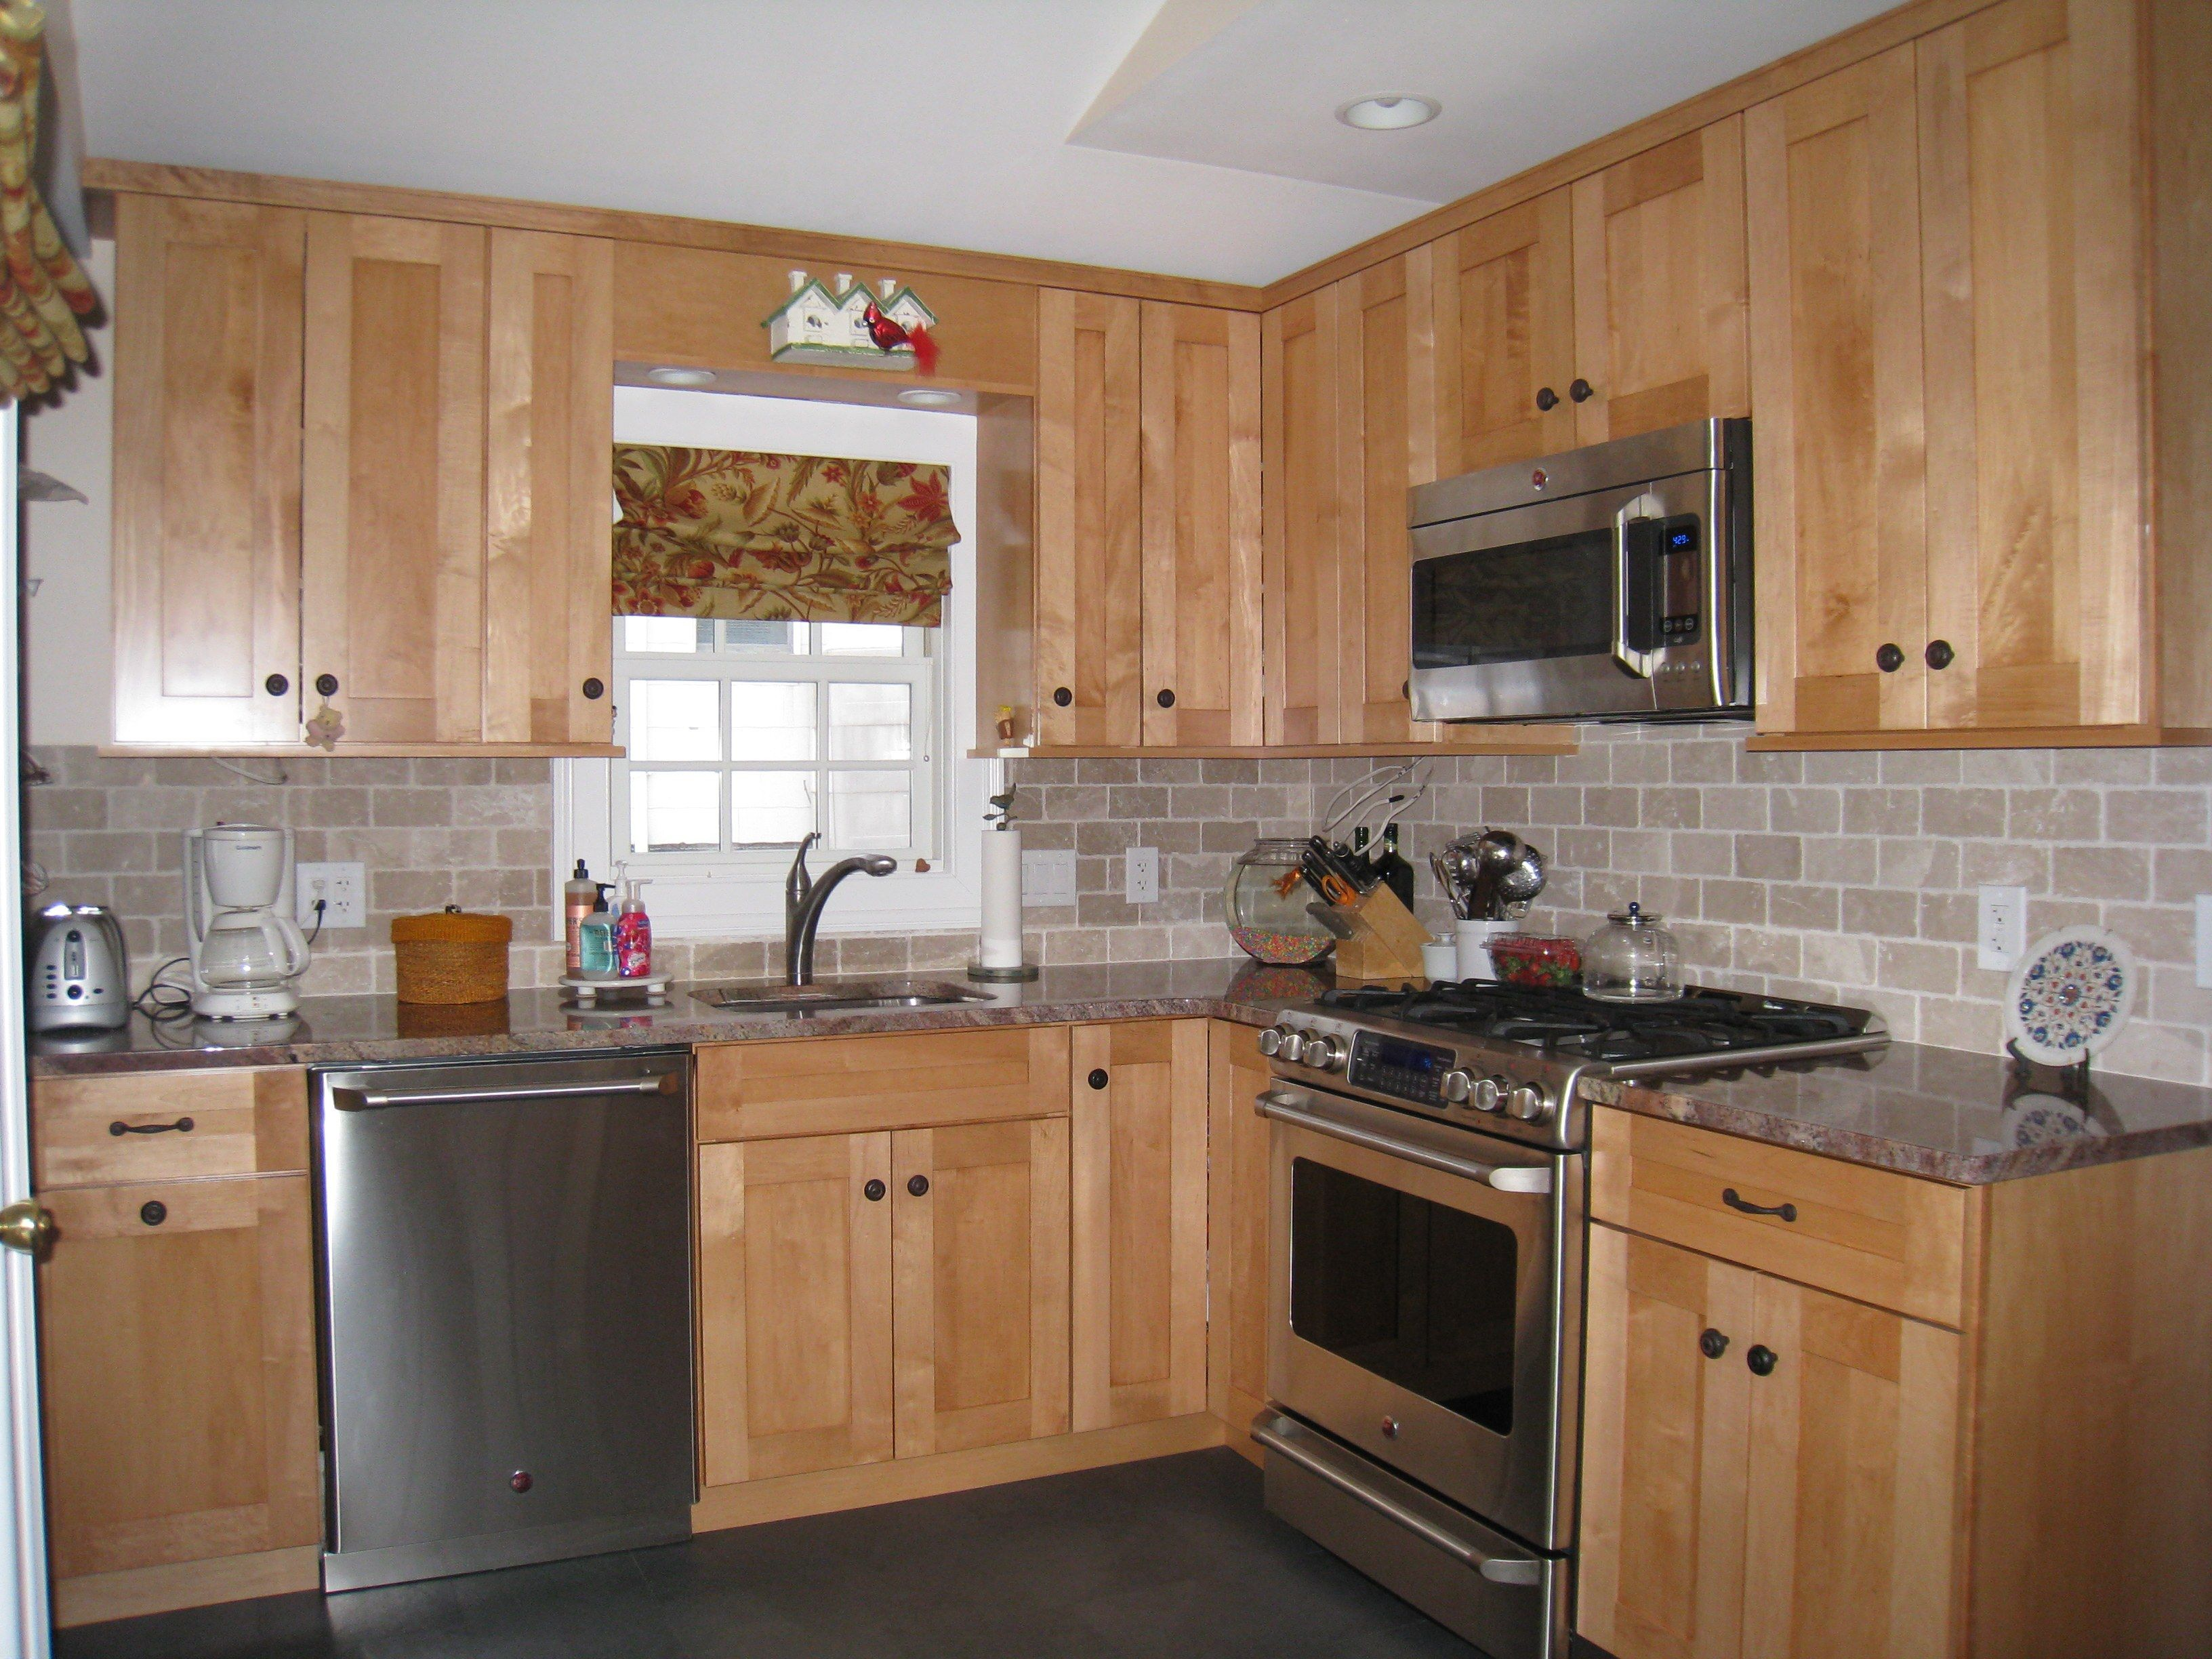 Maple Kitchen Cabinets With Marble Countertops Oak Cabinets White Subway Tile Windswept Blue Walls